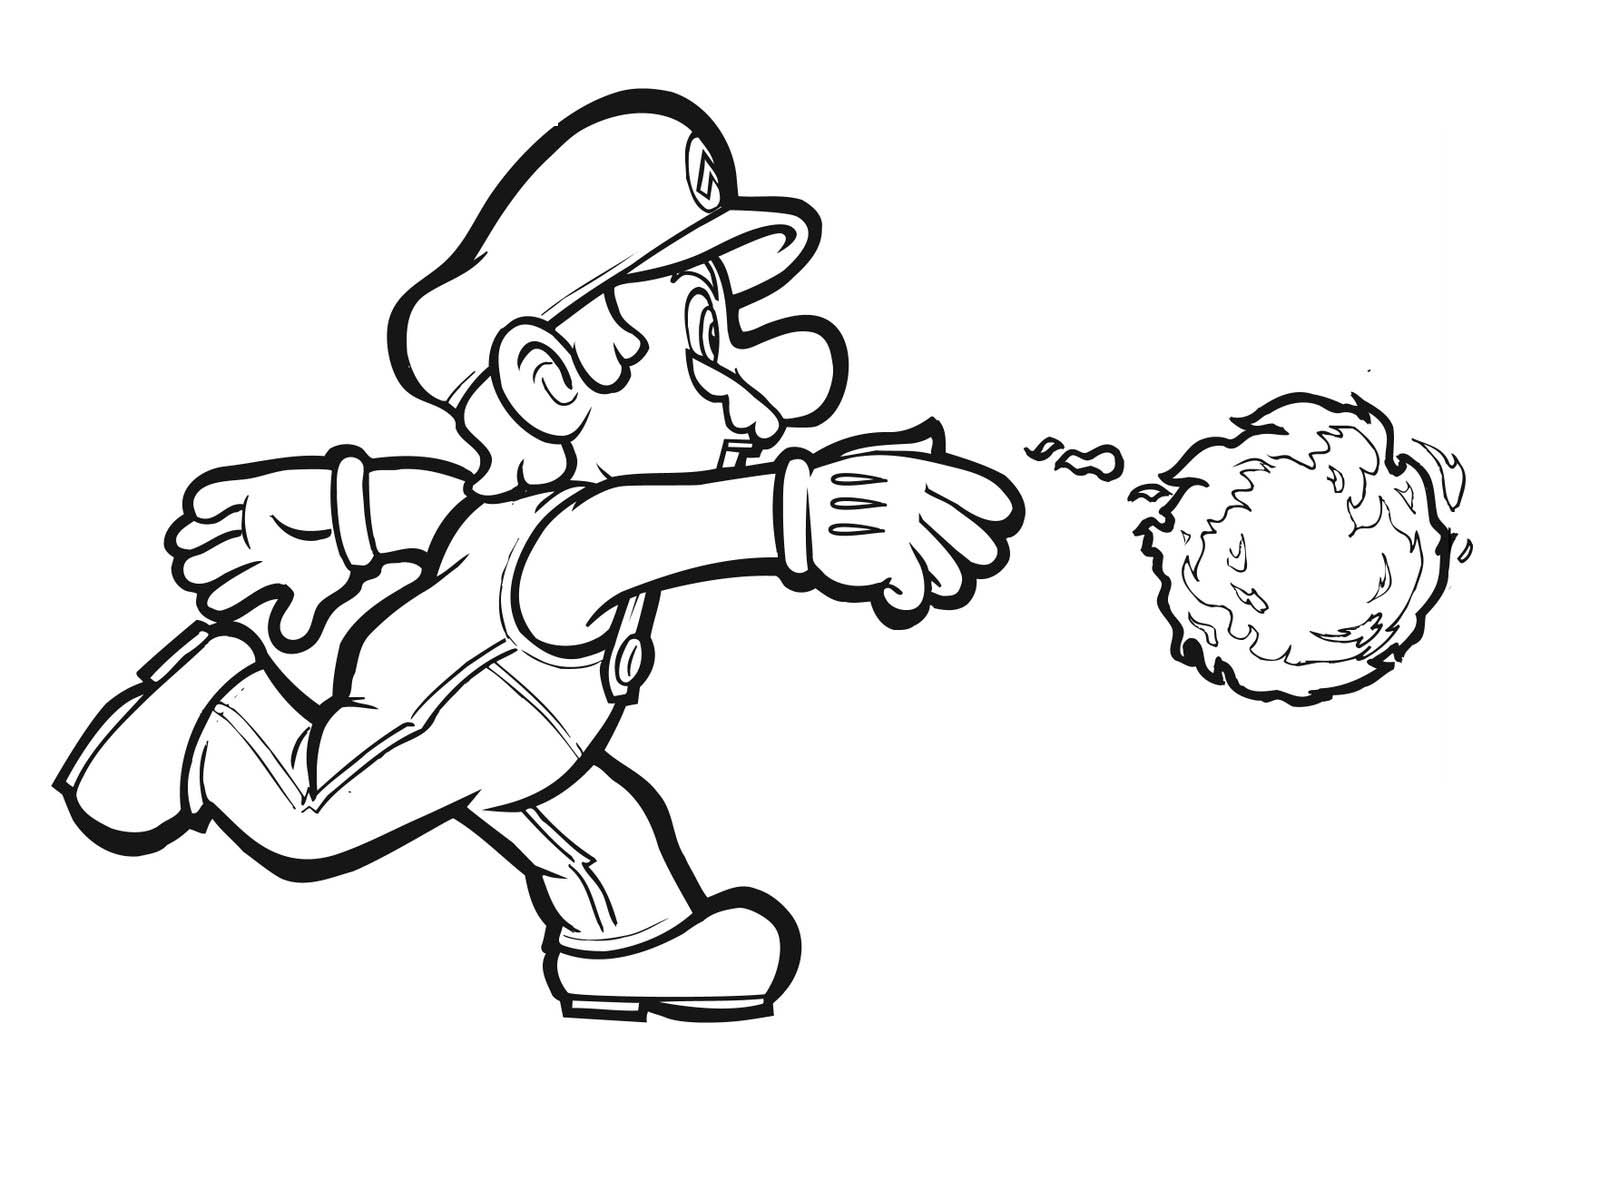 mario kart 8 coloring pages